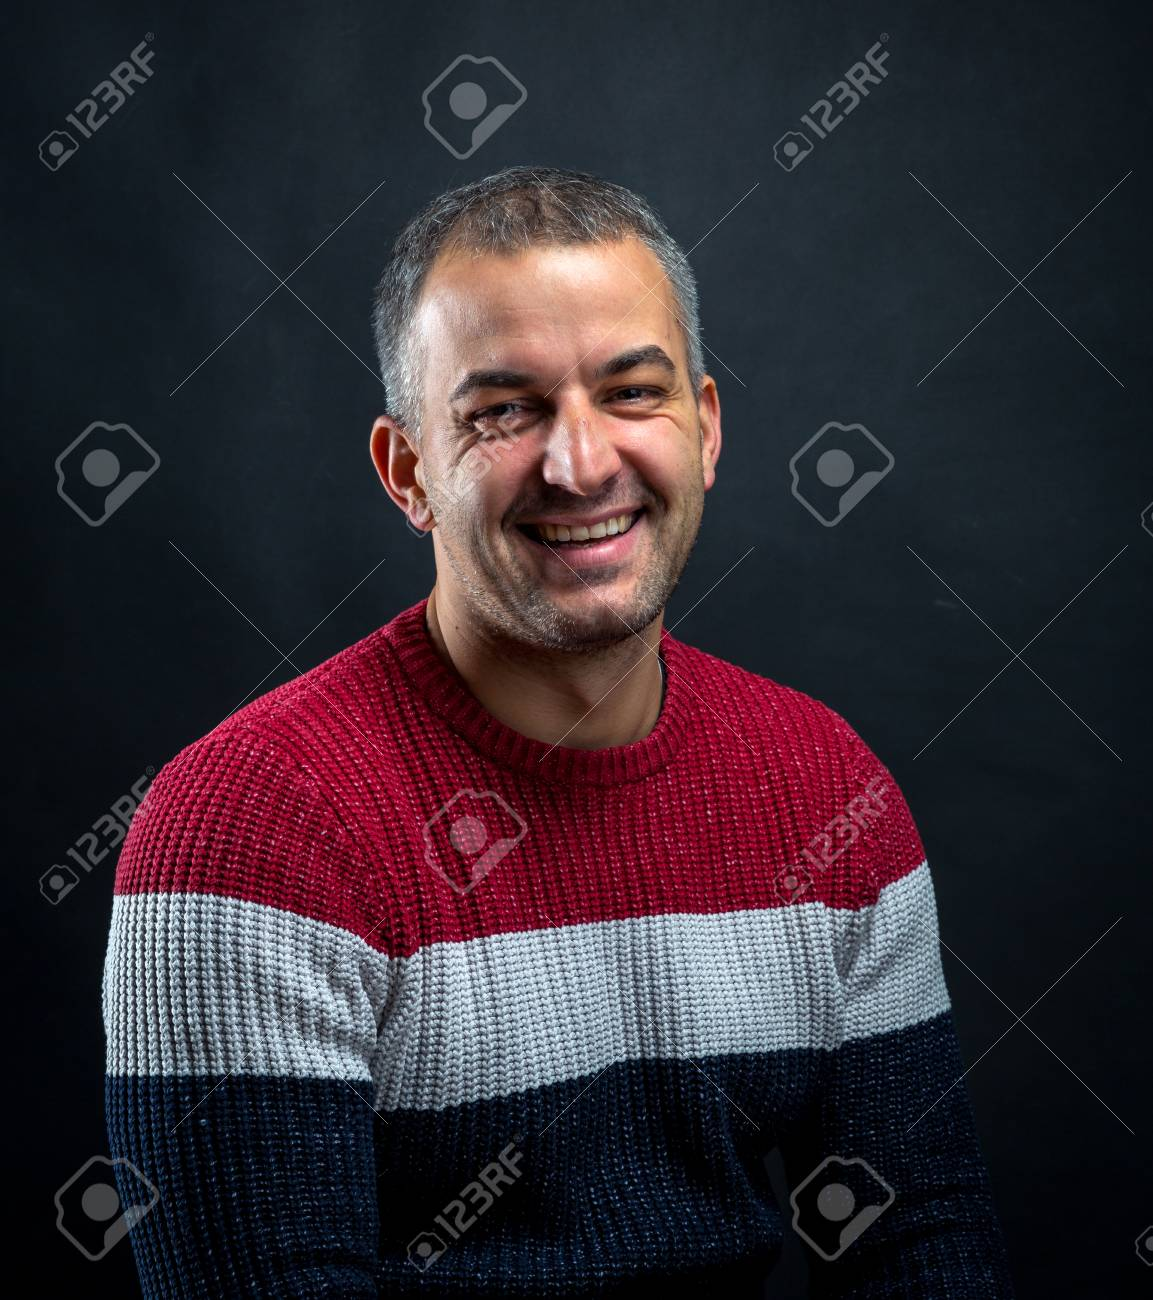 Portrait of smiling man in pullover isolated on black background. Brutal unshaven handsome man in professional studio. - 66901351